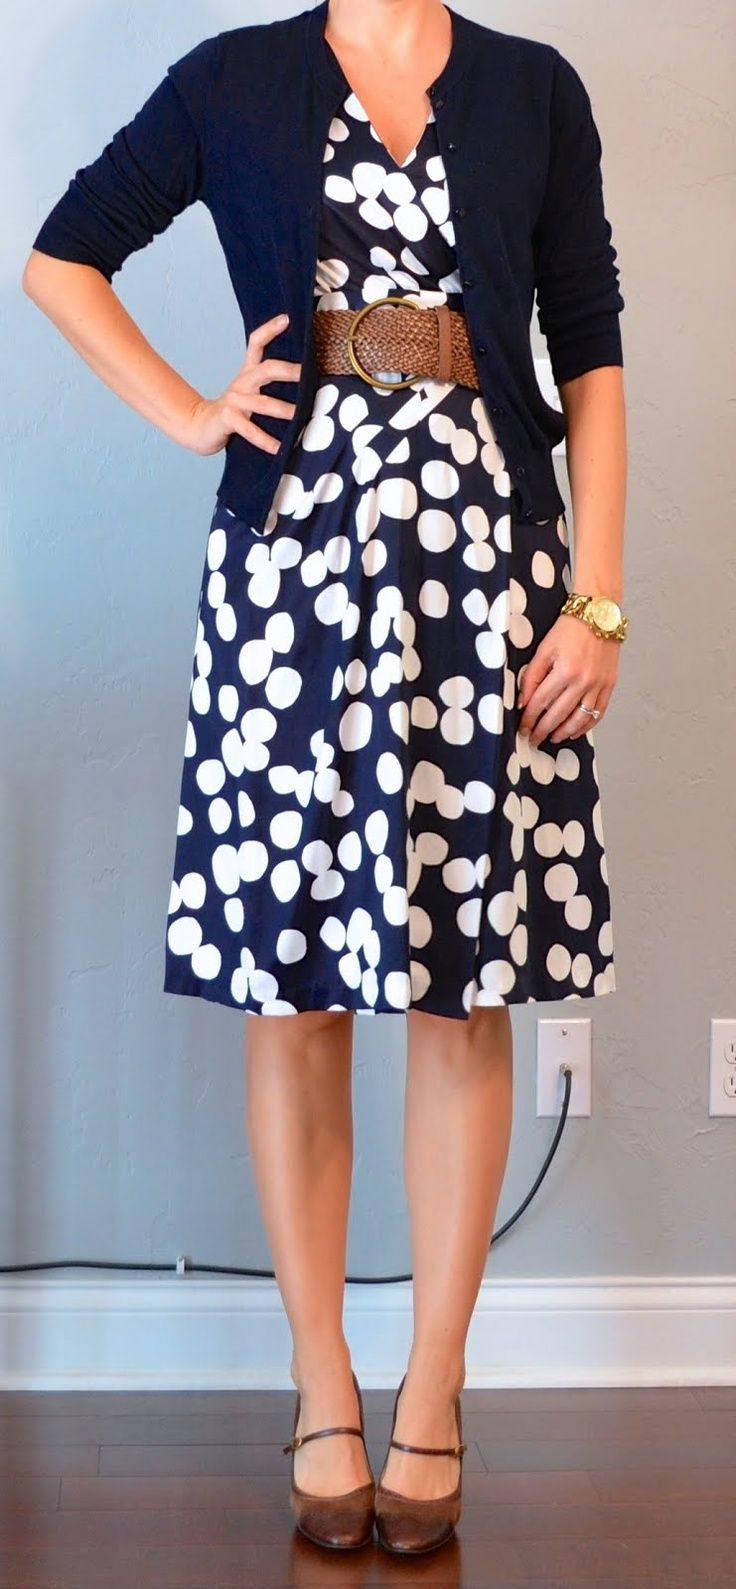 52c1a53b0862 Polka dot dress